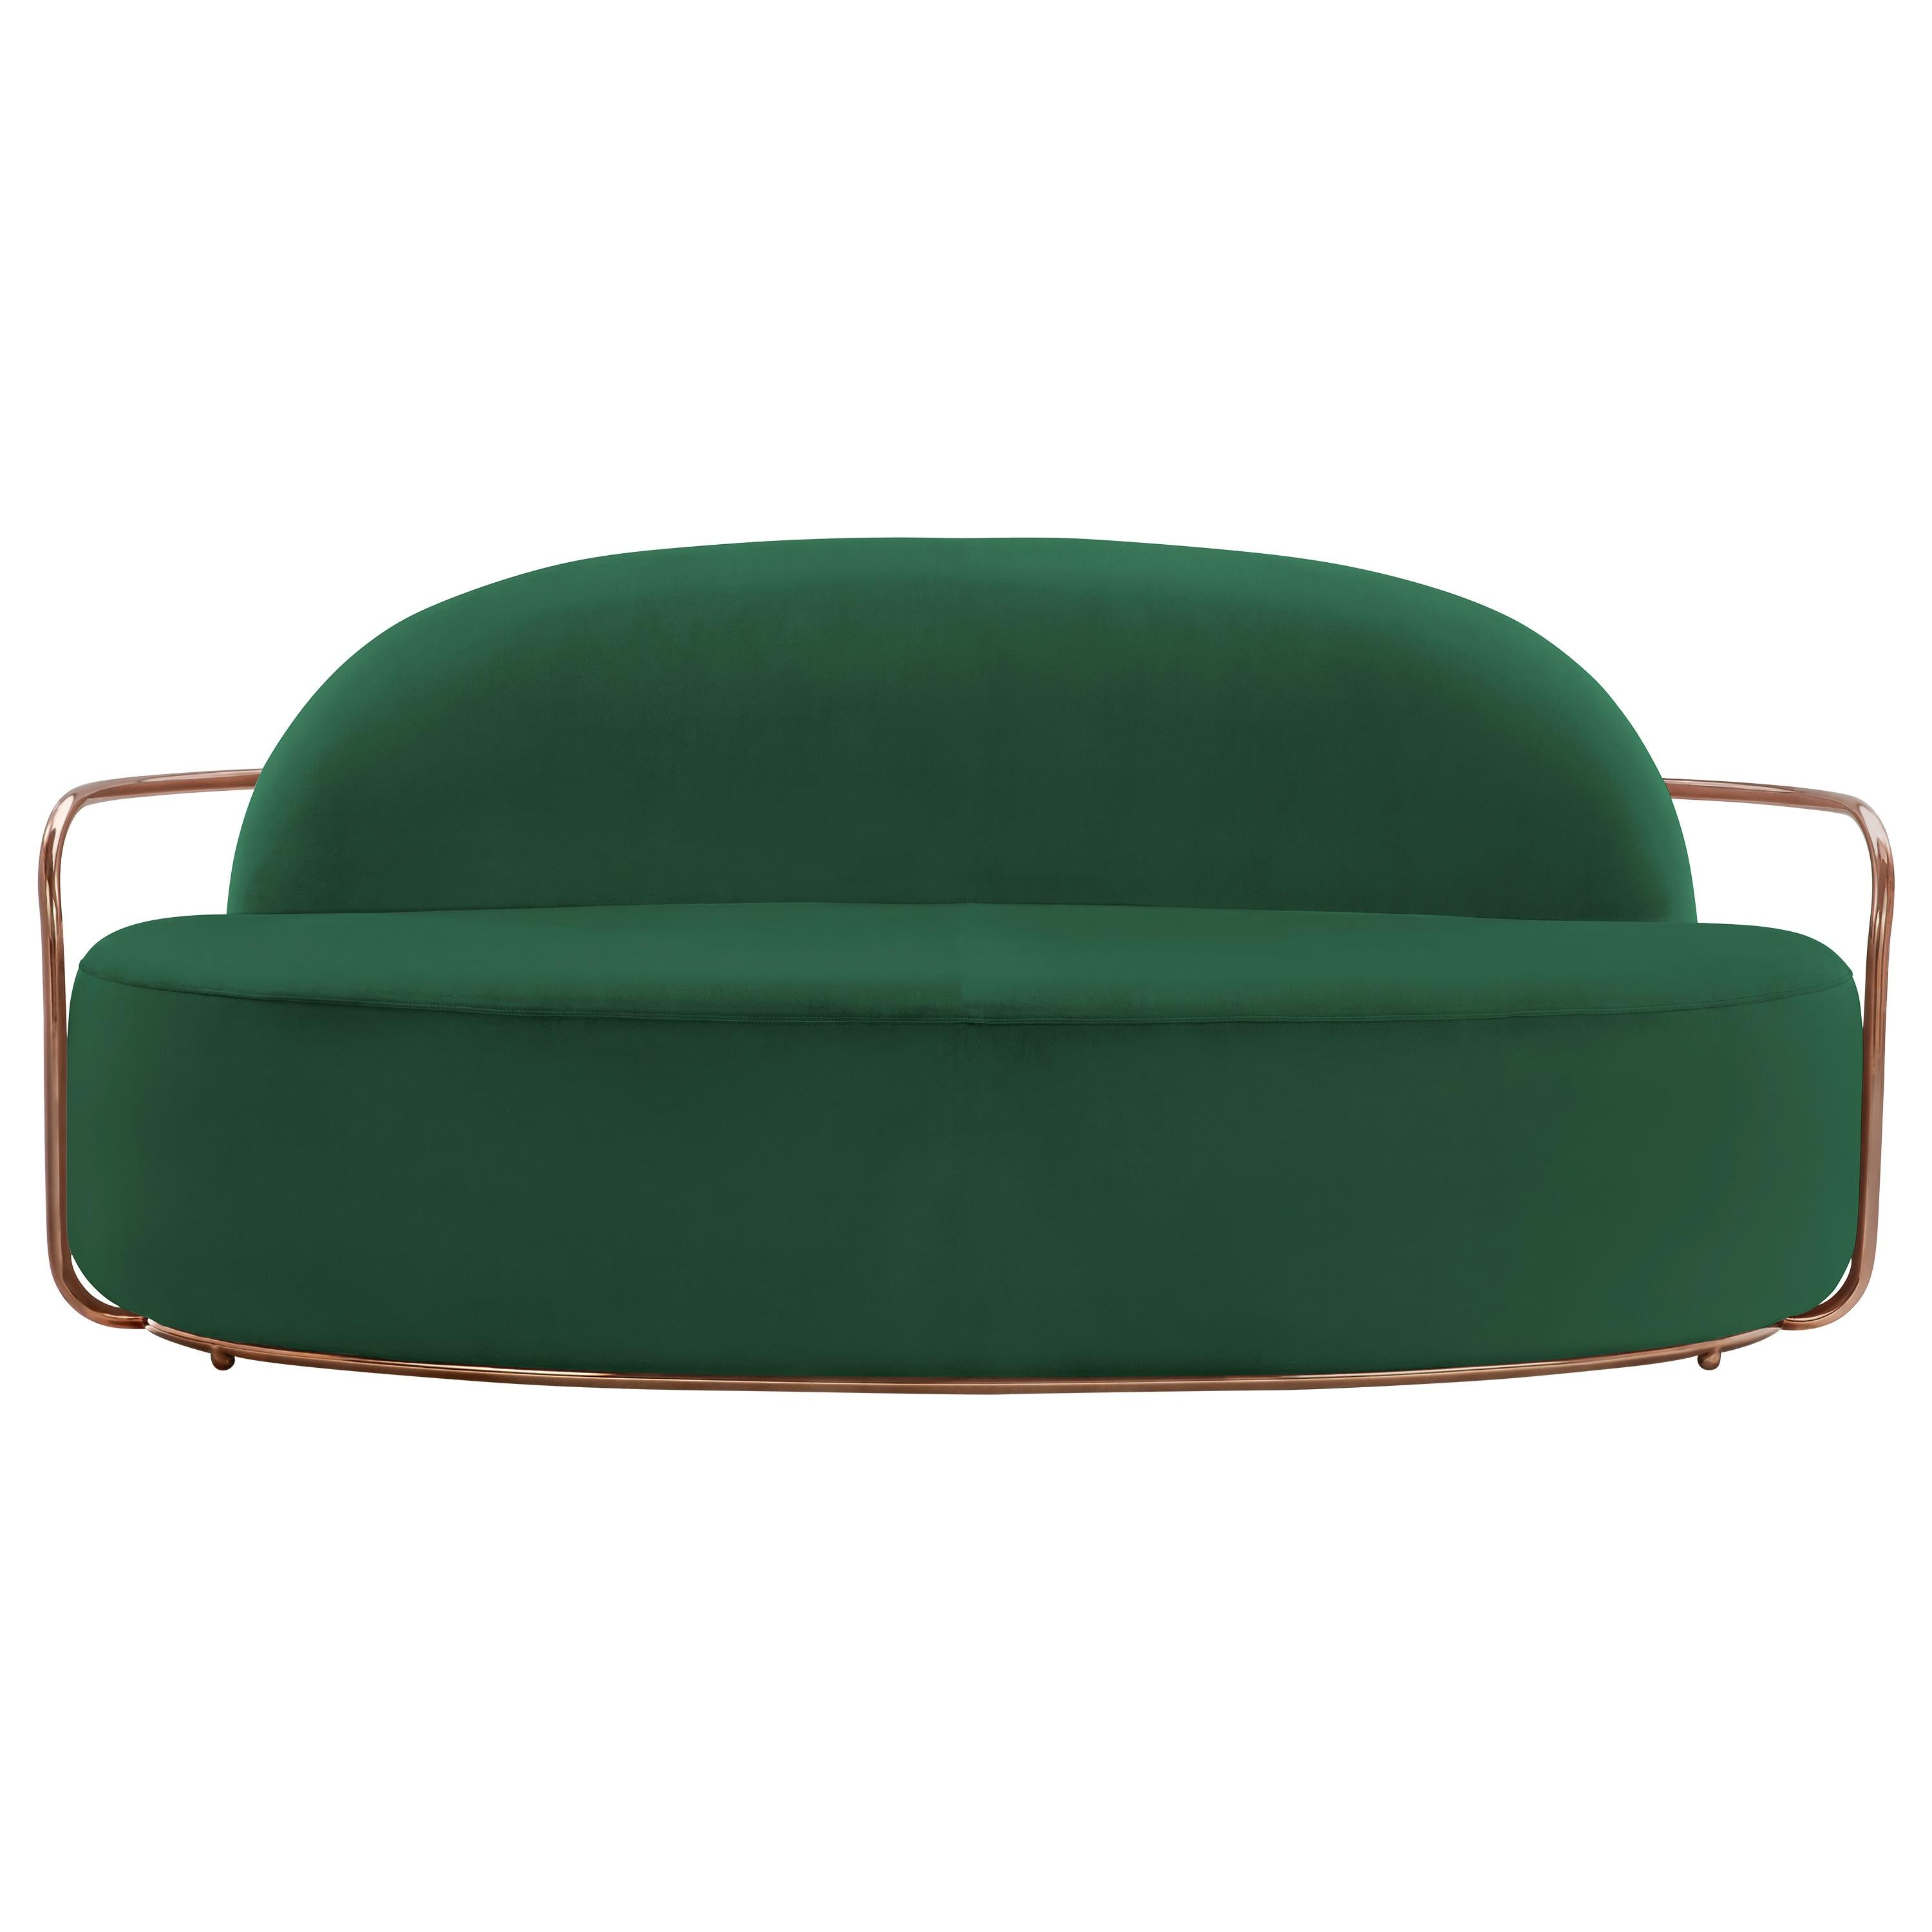 Orion 3 Seat Sofa with Plush Green Velvet and Rose Gold Arms by Nika Zupanc